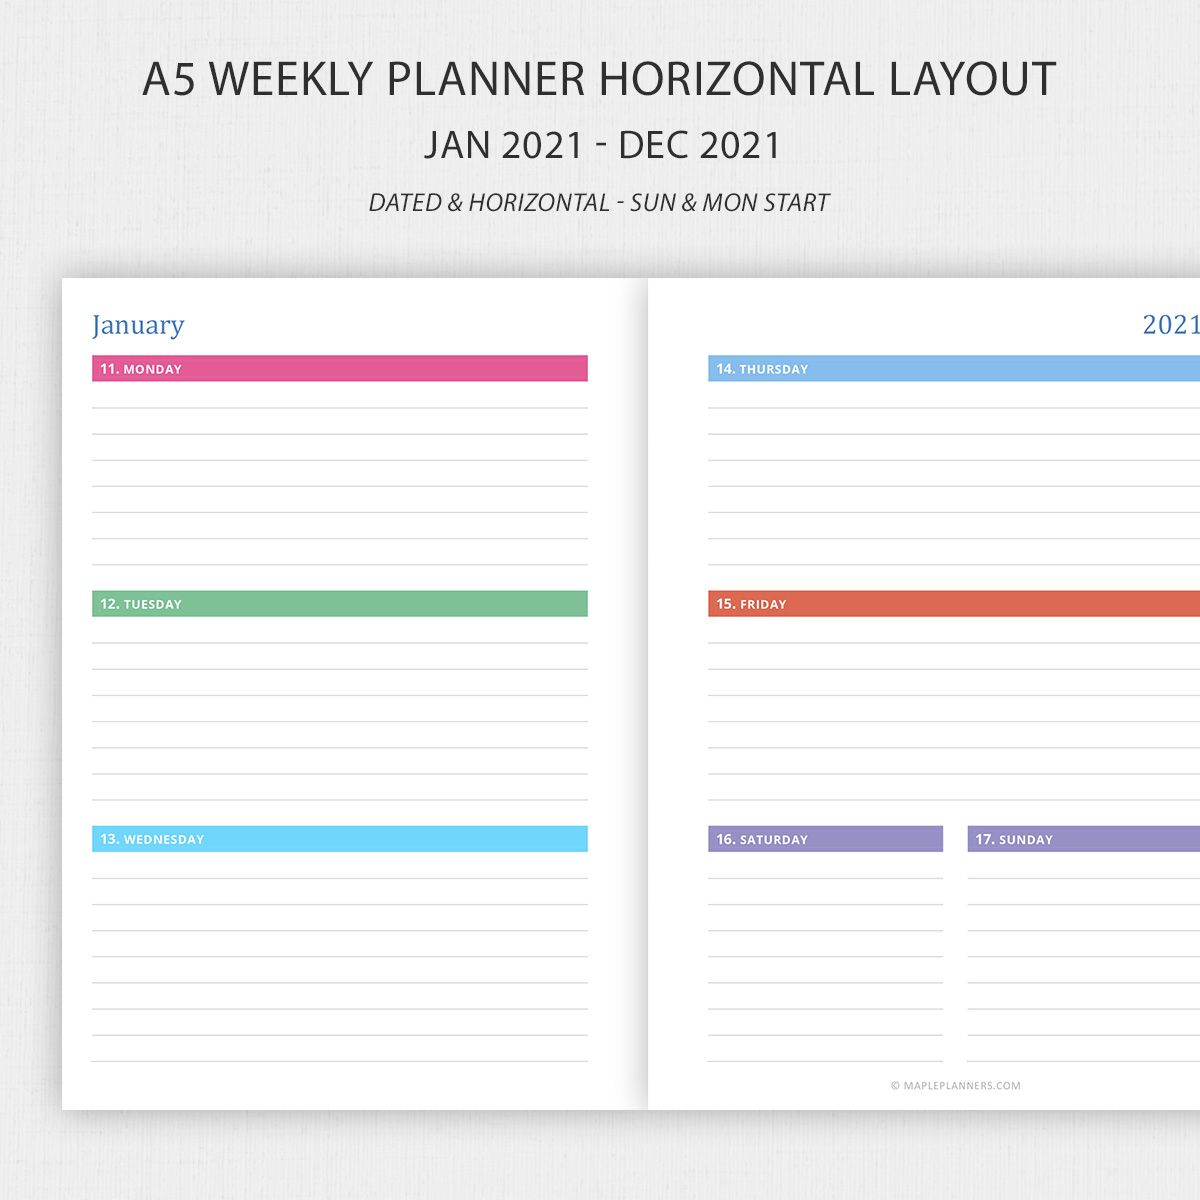 Printable A5 Weekly Planner 2021 Horizontal Layout